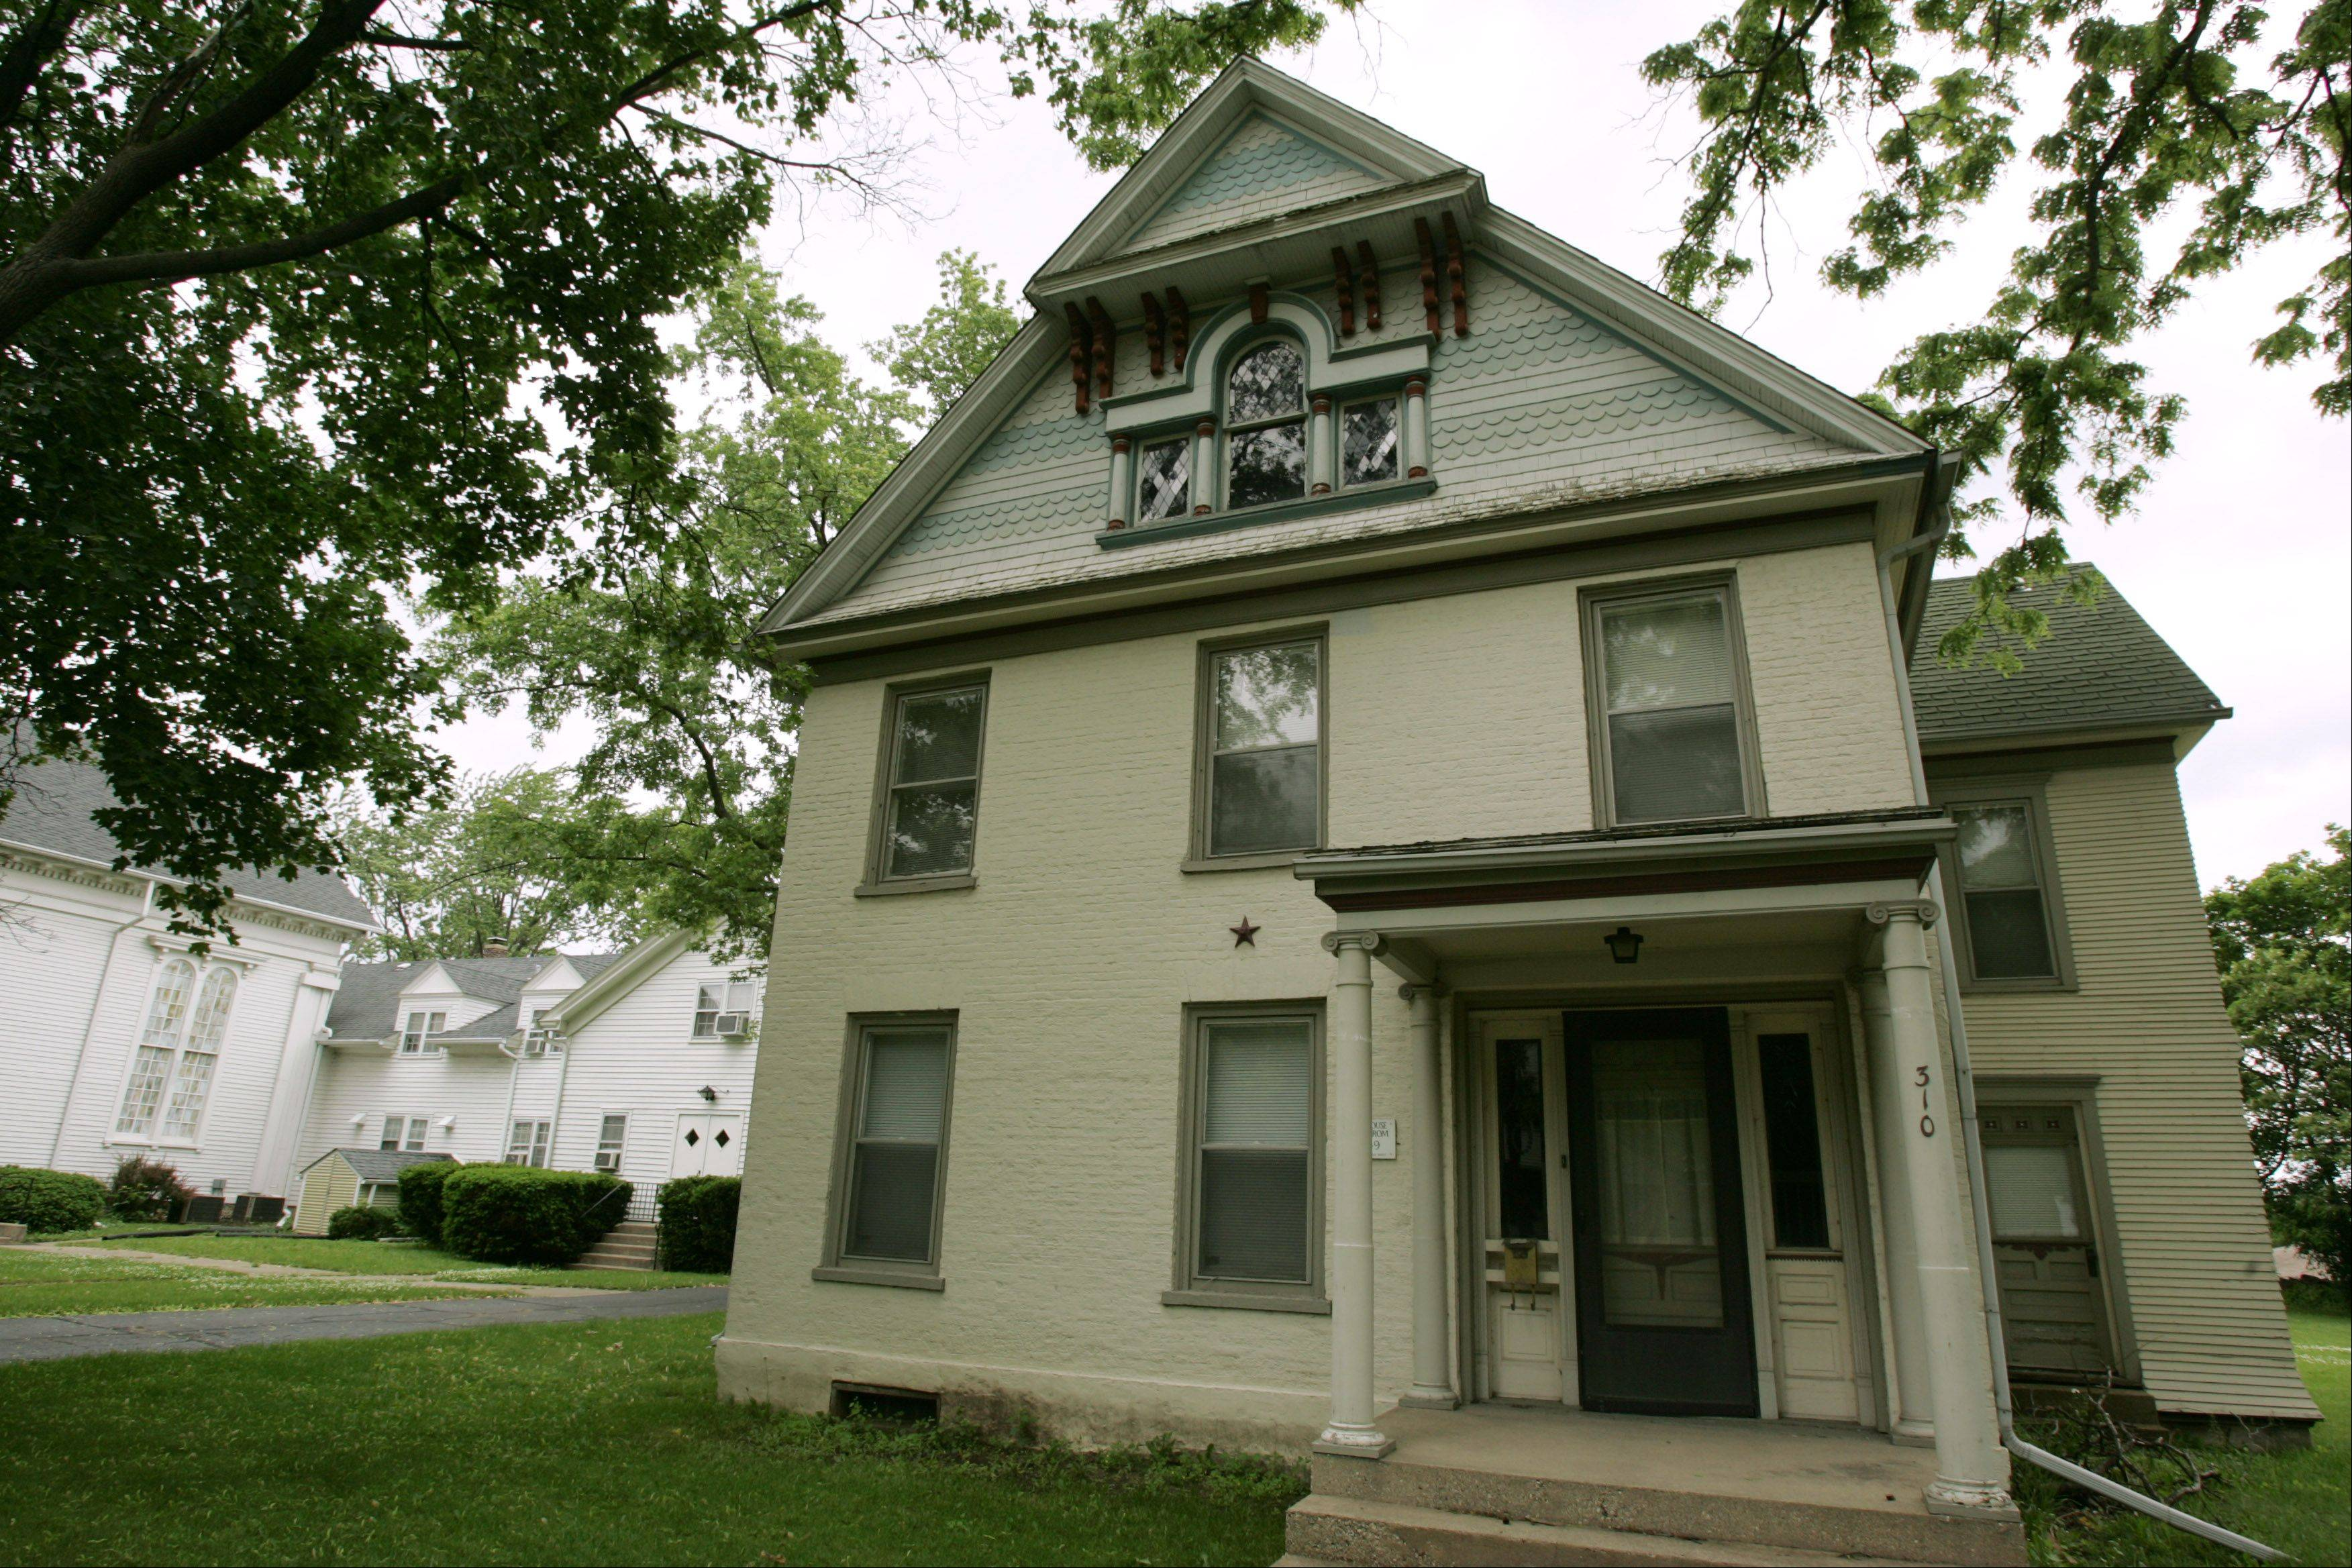 The parsonage at First United Methodist Church in West Dundee remains the subject of debate. Preservationists want to save the historic building, but church leaders have said they want to tear it down because it's in bad shape and of no use.